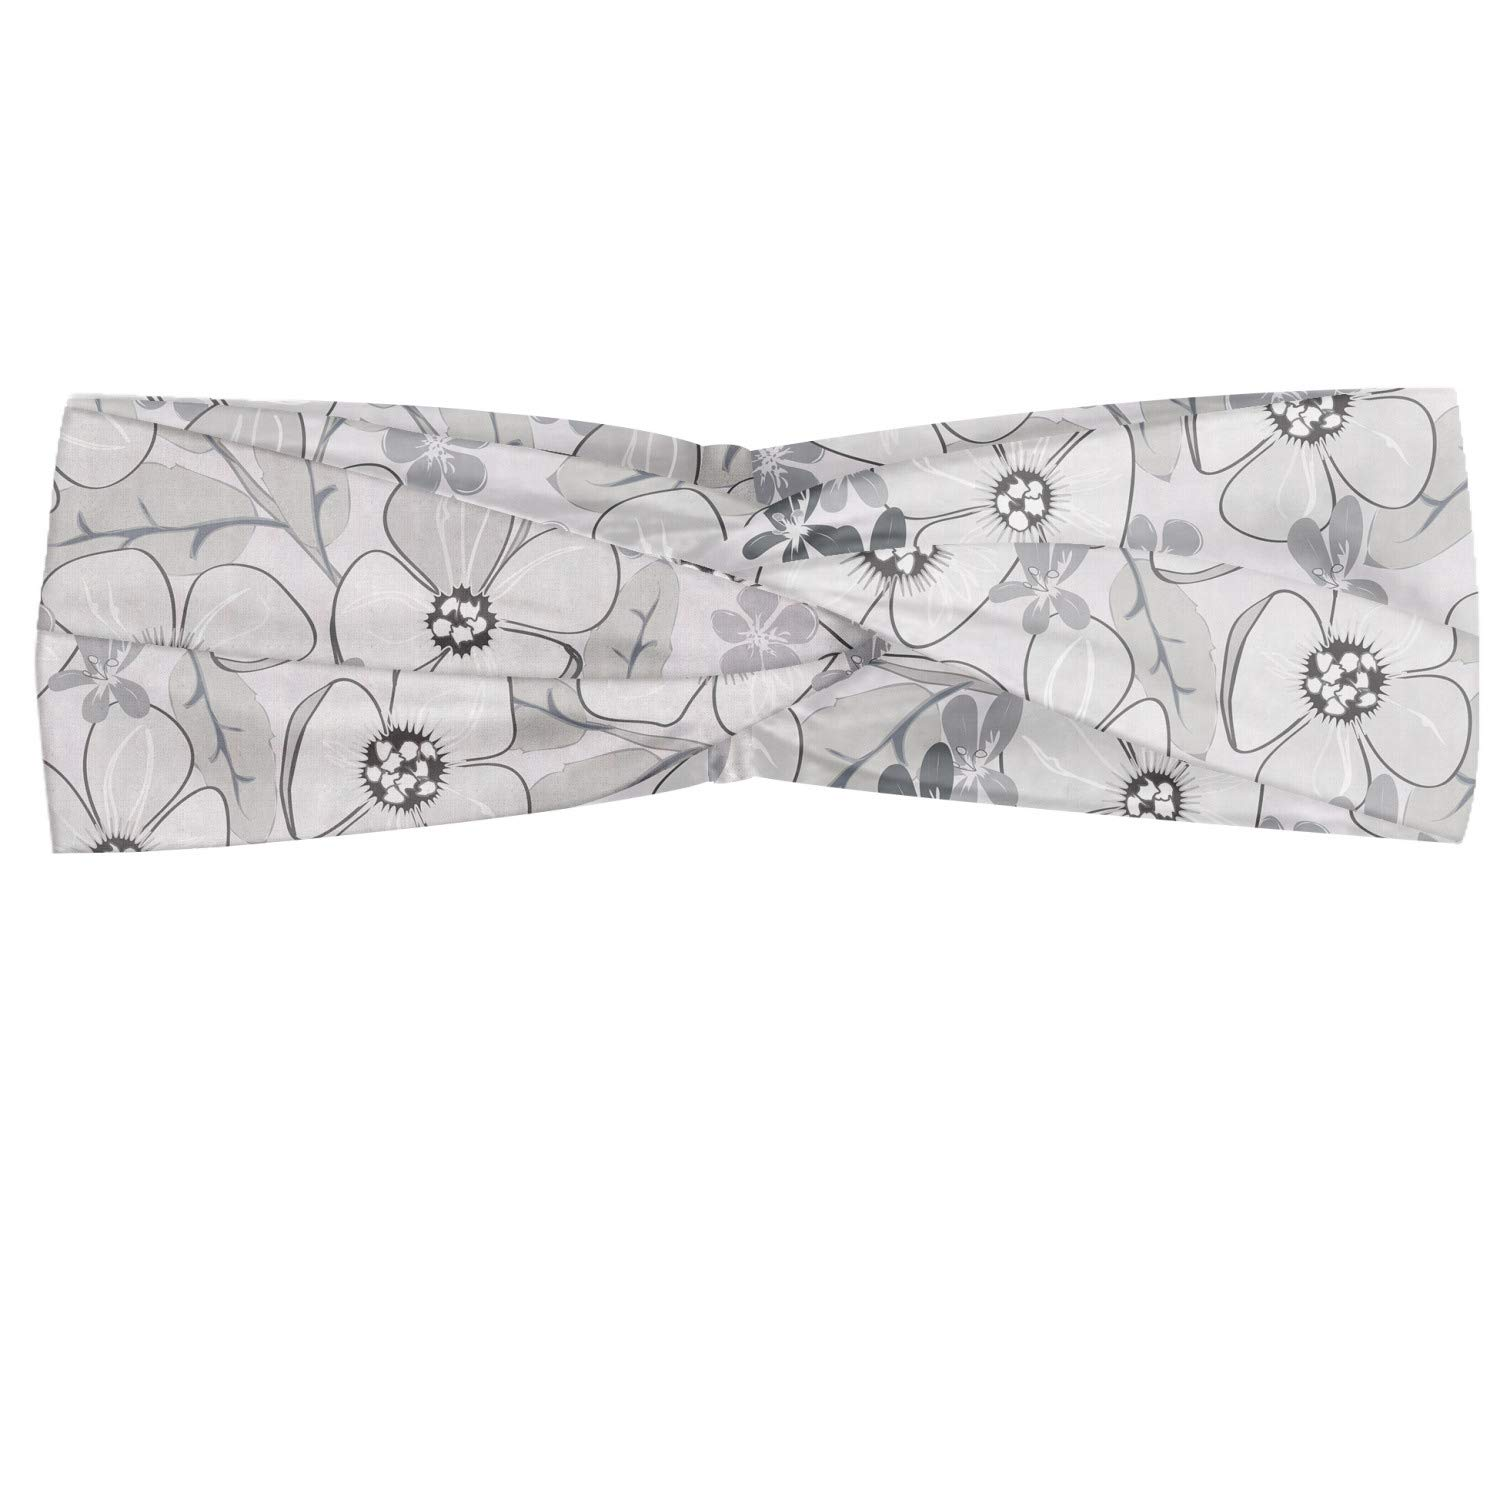 Ambesonne Floral Headband, Abstract Sketchy Hand Drawn Garden Spring Flowers with Grey Backdrop Image, Elastic and Soft Women's Bandana for Sports and Everyday Use, Pale Grey and White